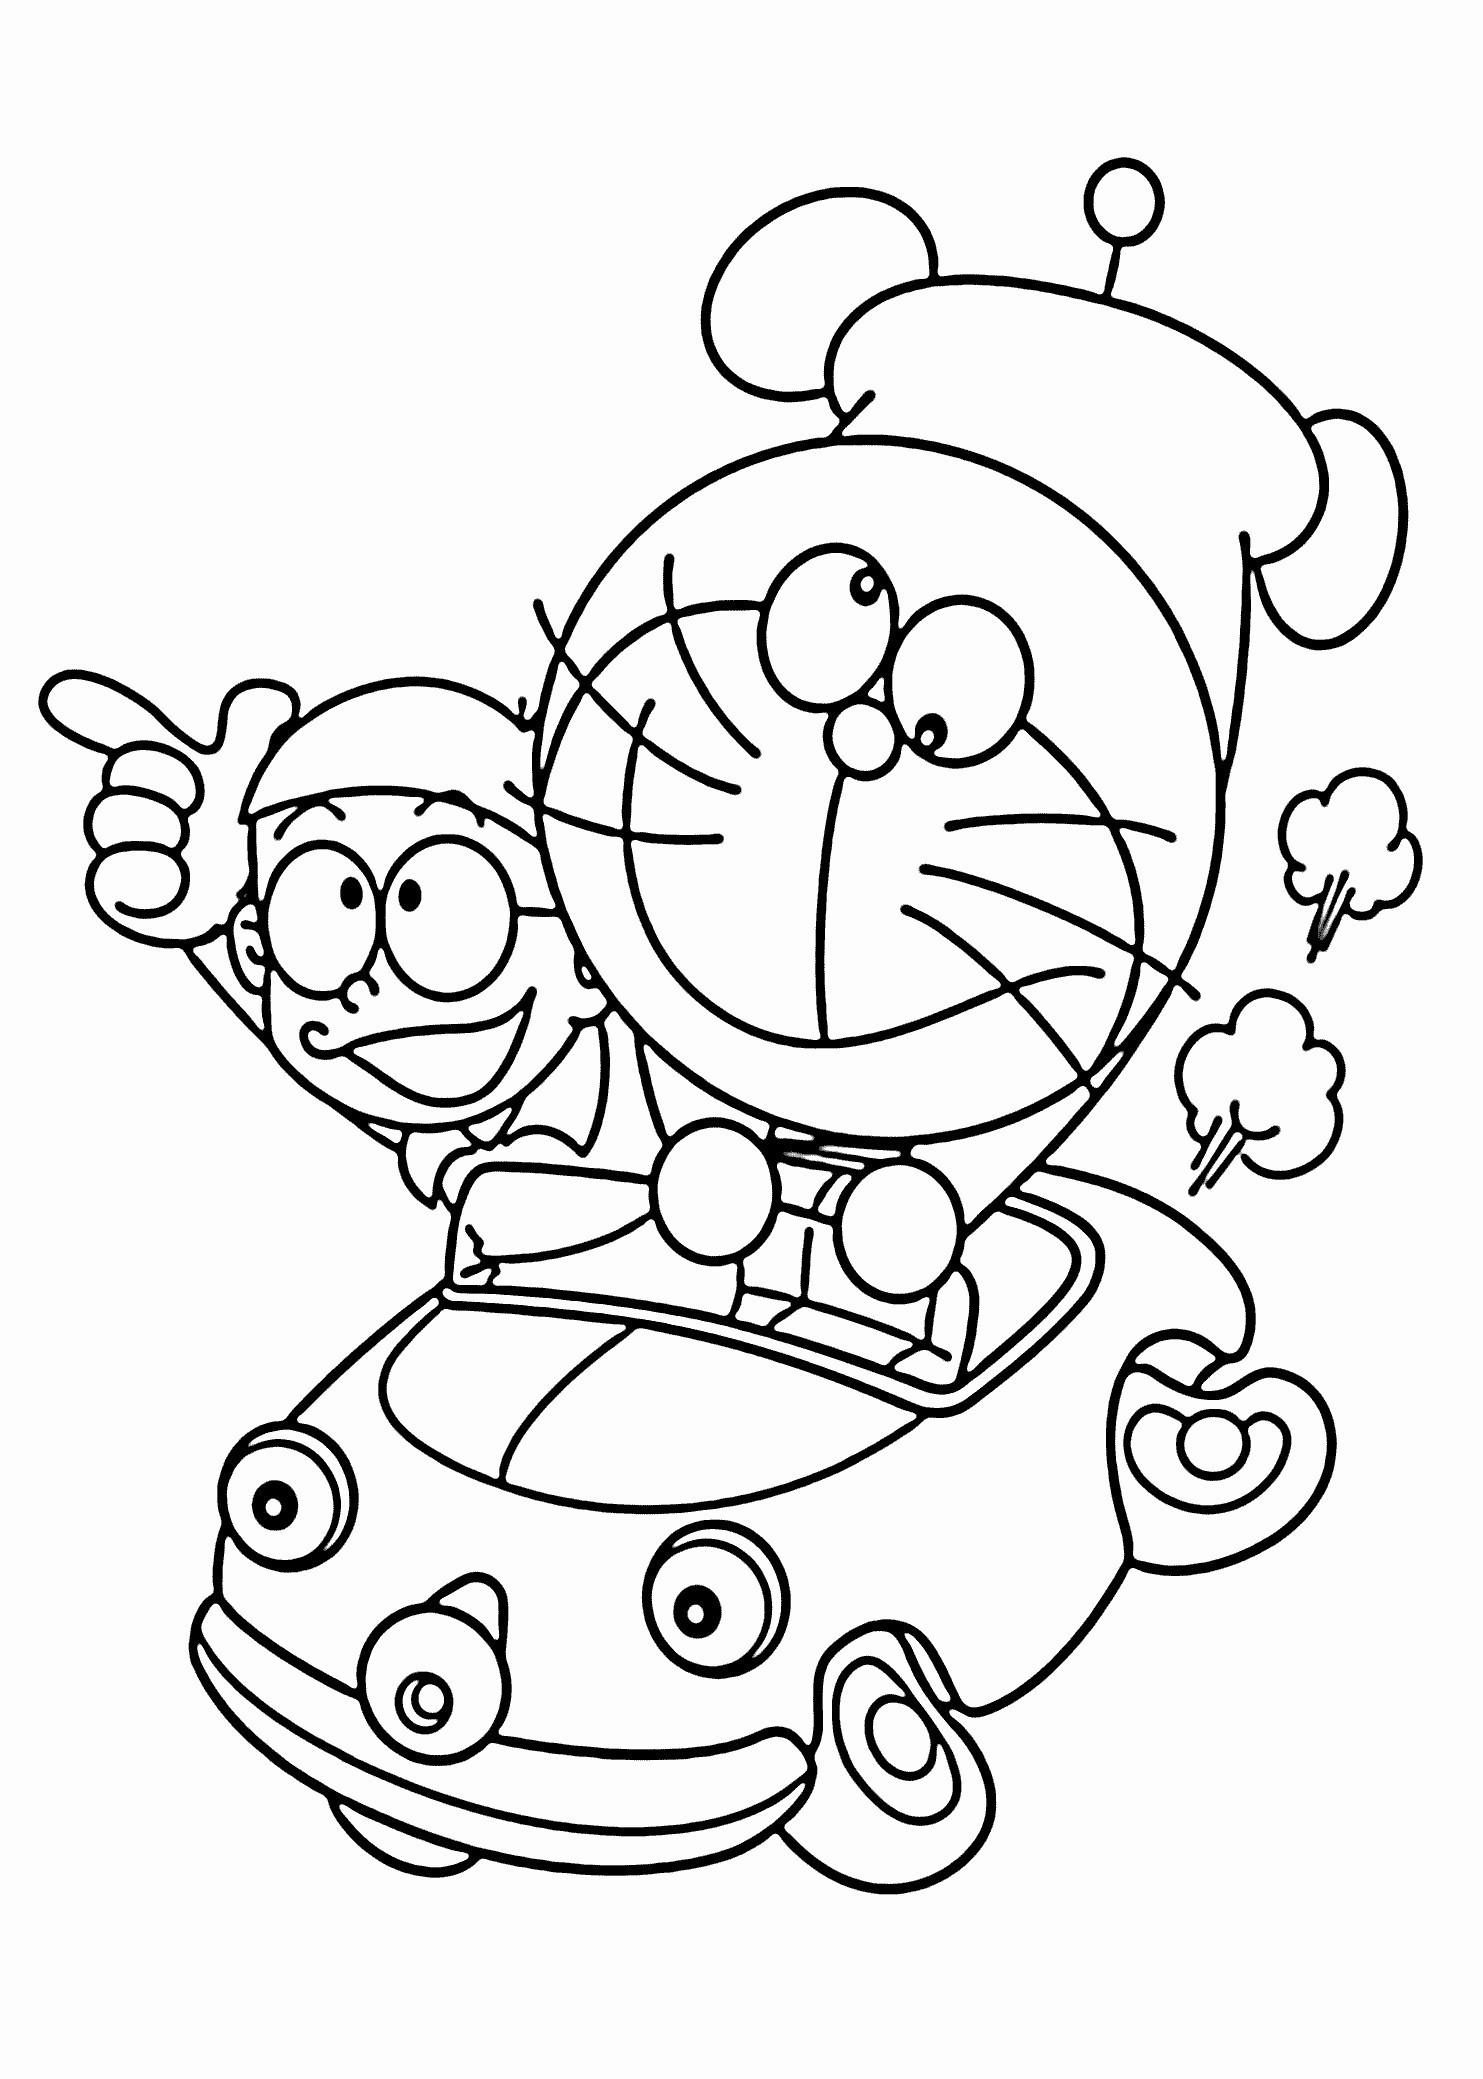 Pokemon Coloring Pages That You Can Print – Pusat Hobi